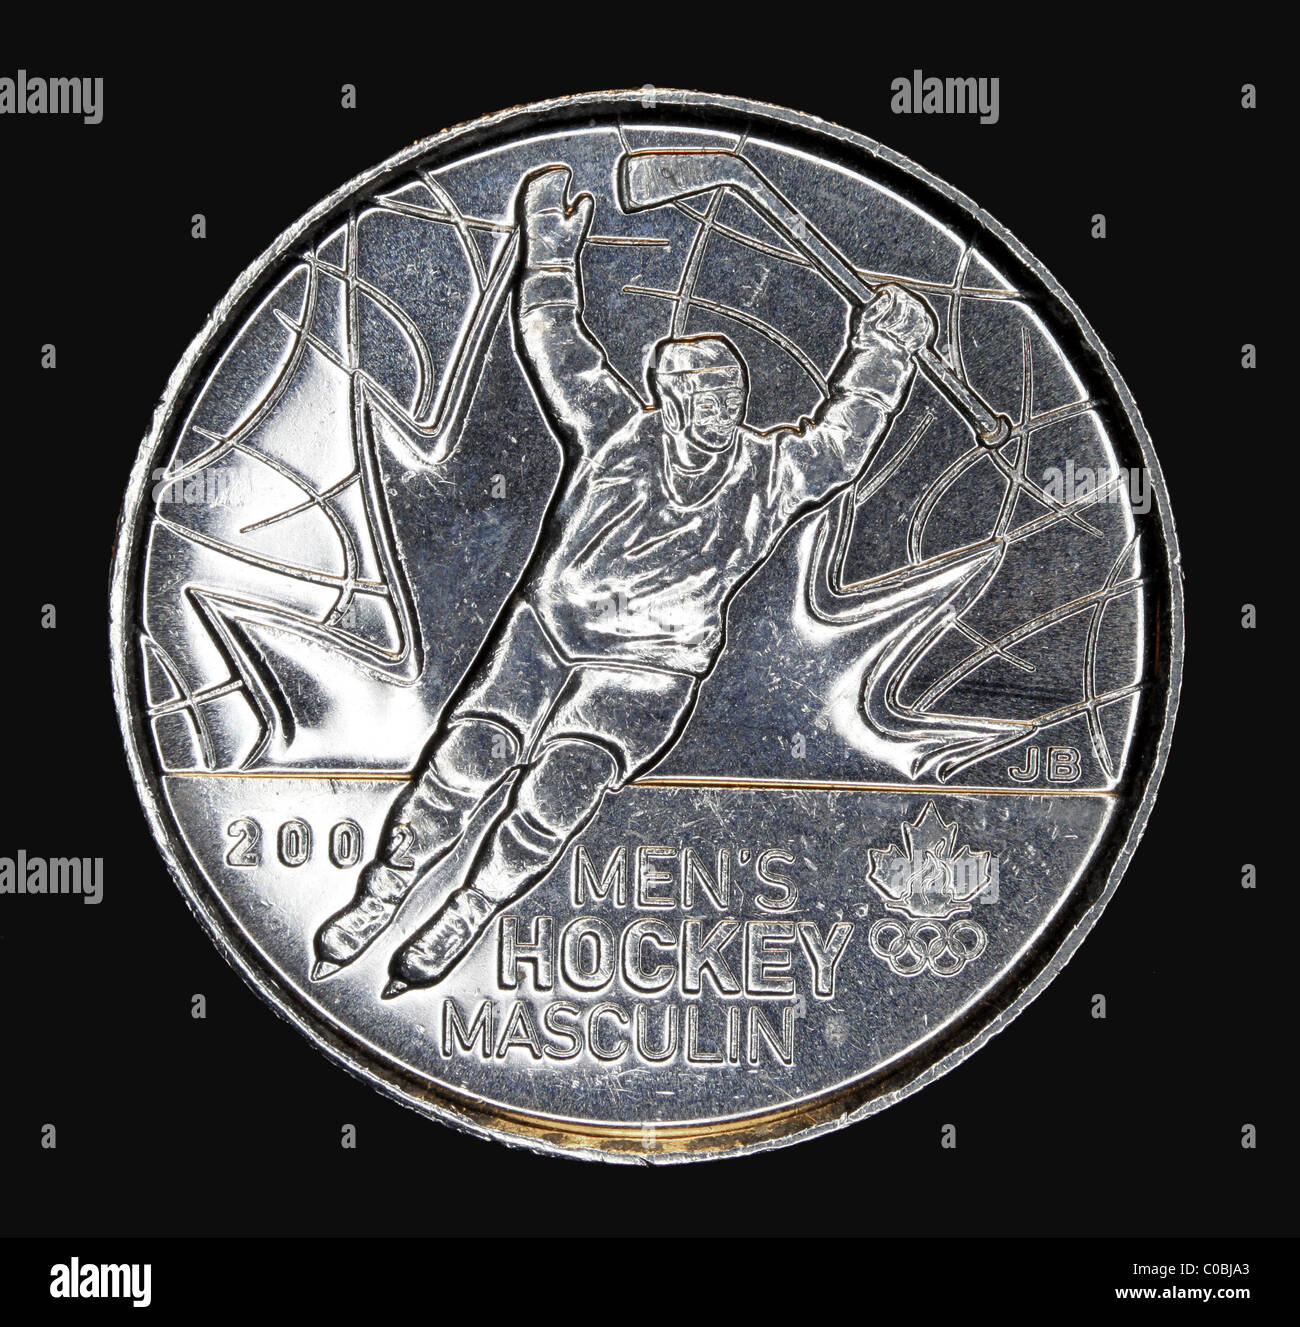 Canadian coin for Vancouver Winter Olympic Games - Stock Image